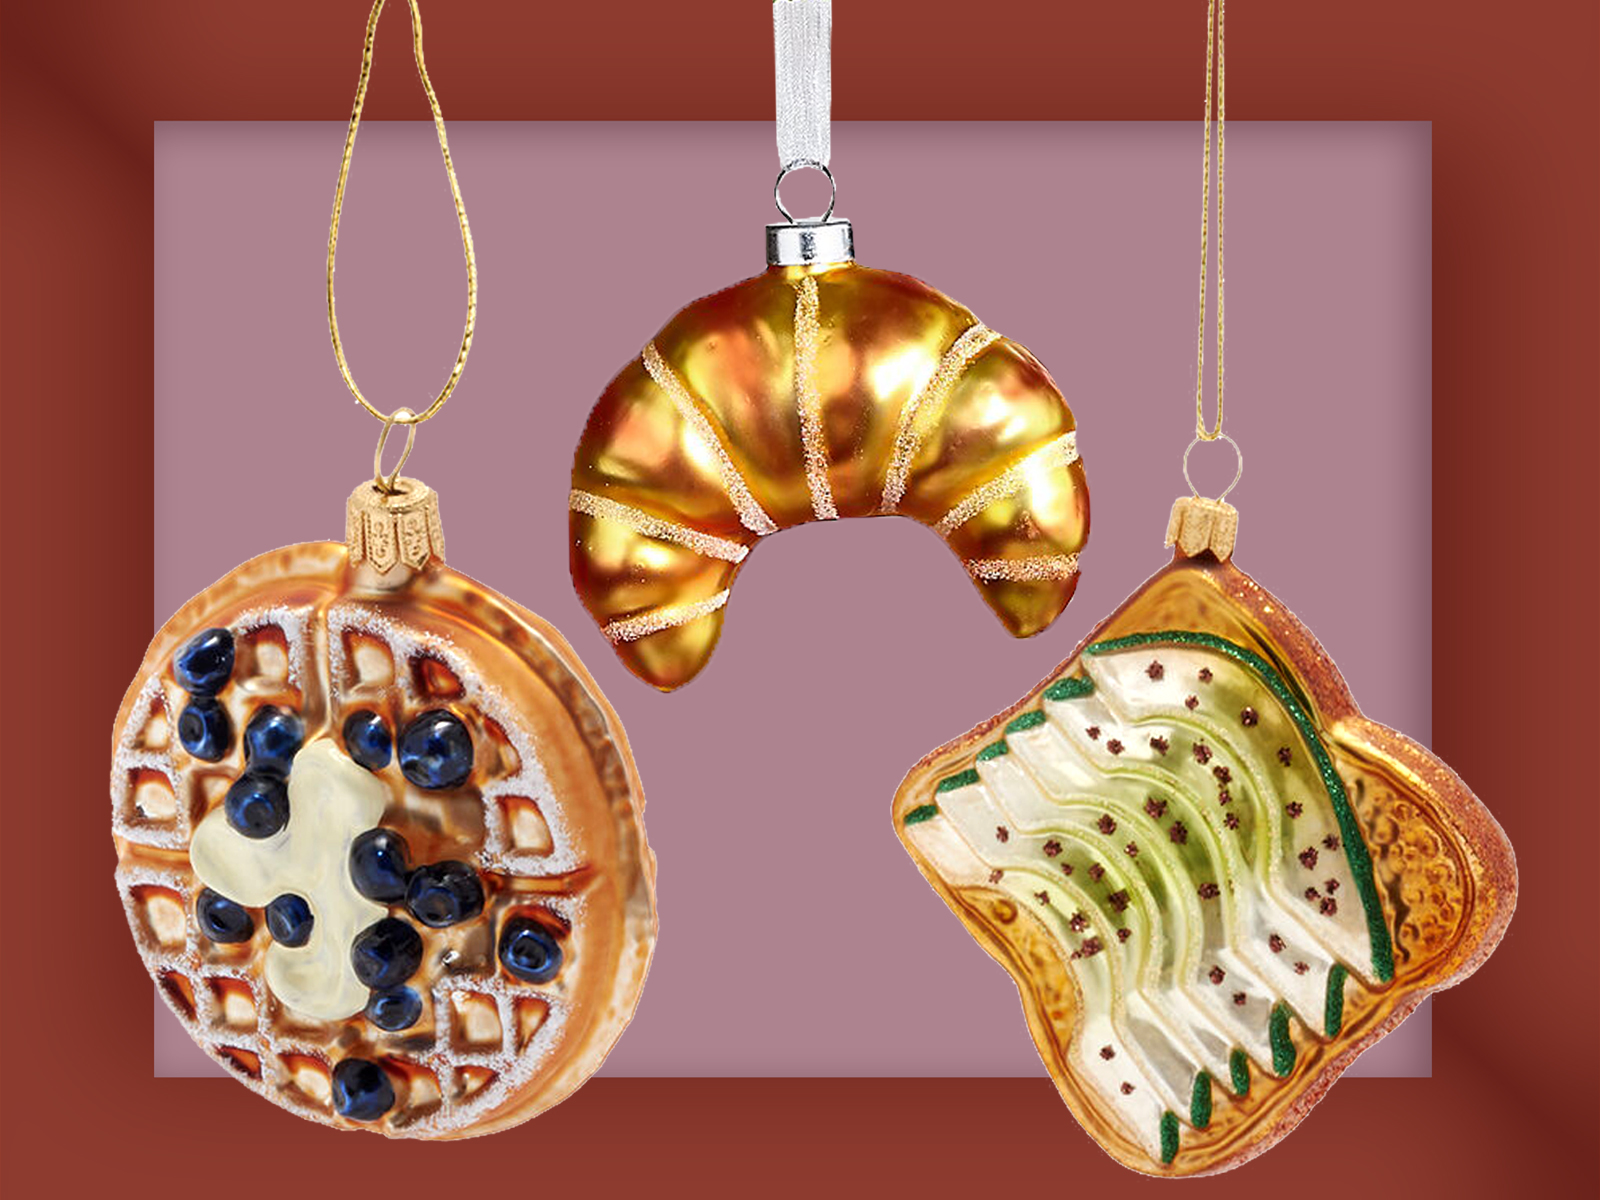 Breakfast Ornaments